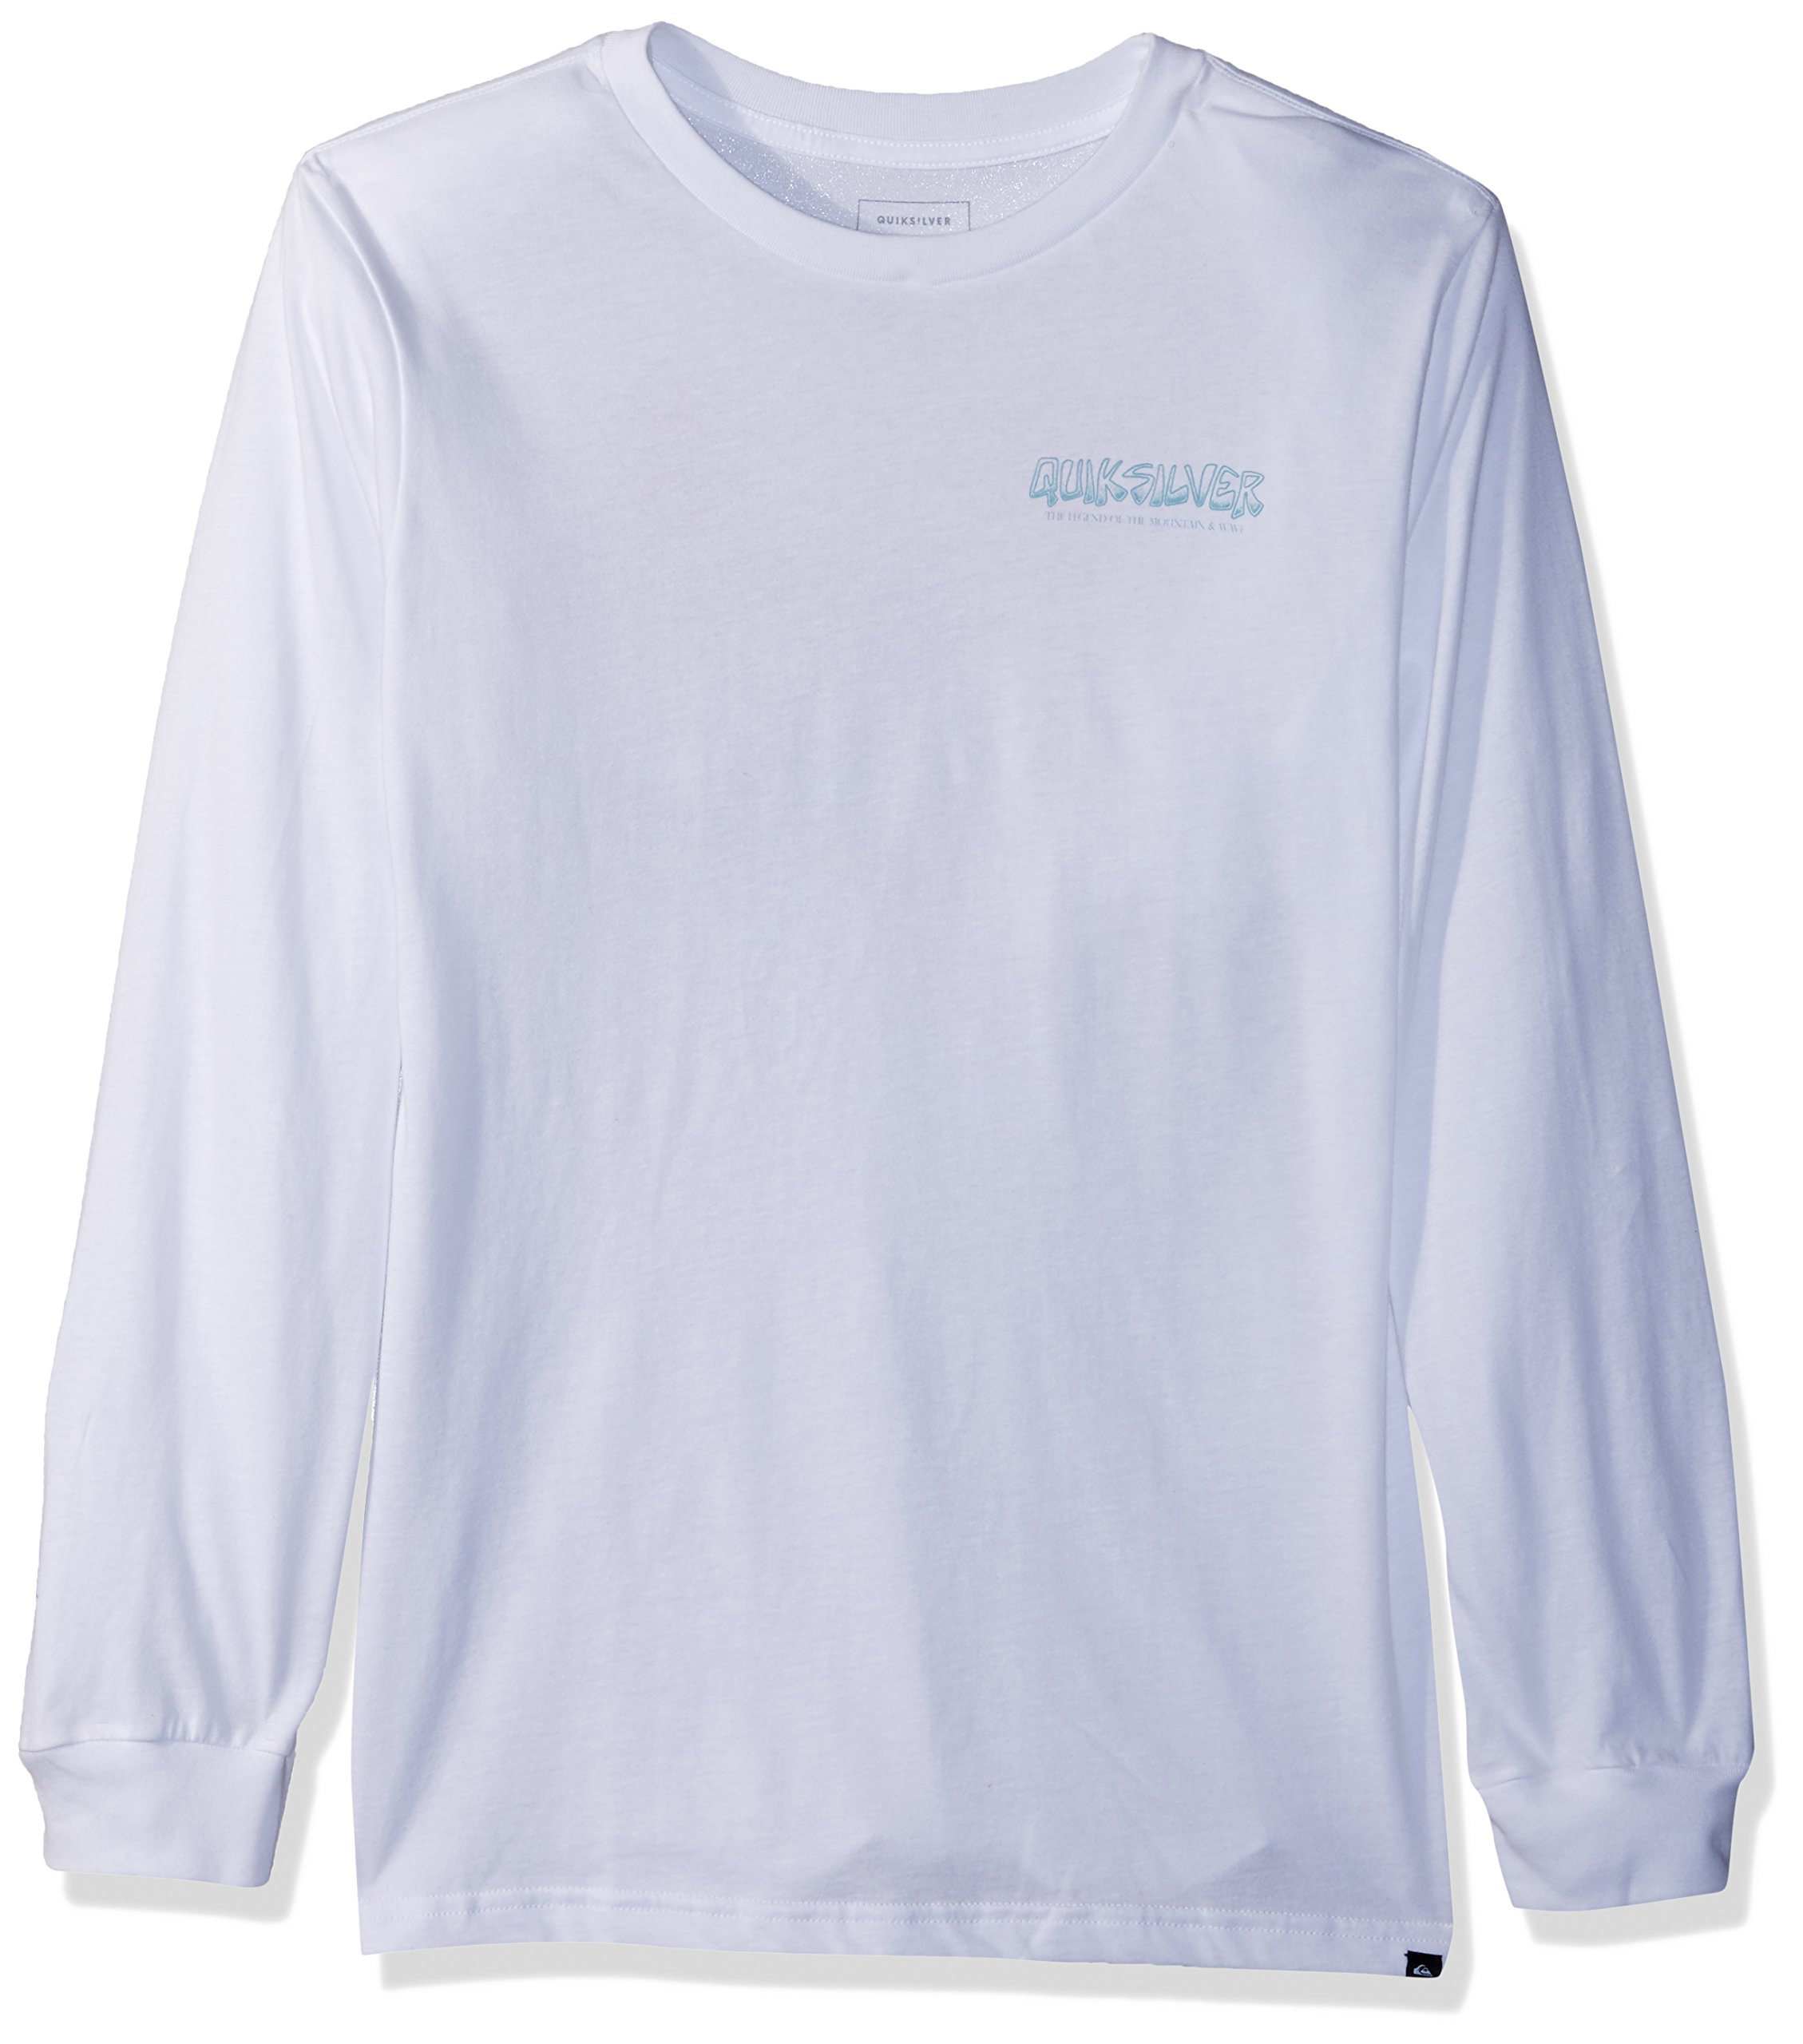 Quiksilver Big Boys' The Original M and W Youth Long Sleeve Tee Shirt, White, S/10